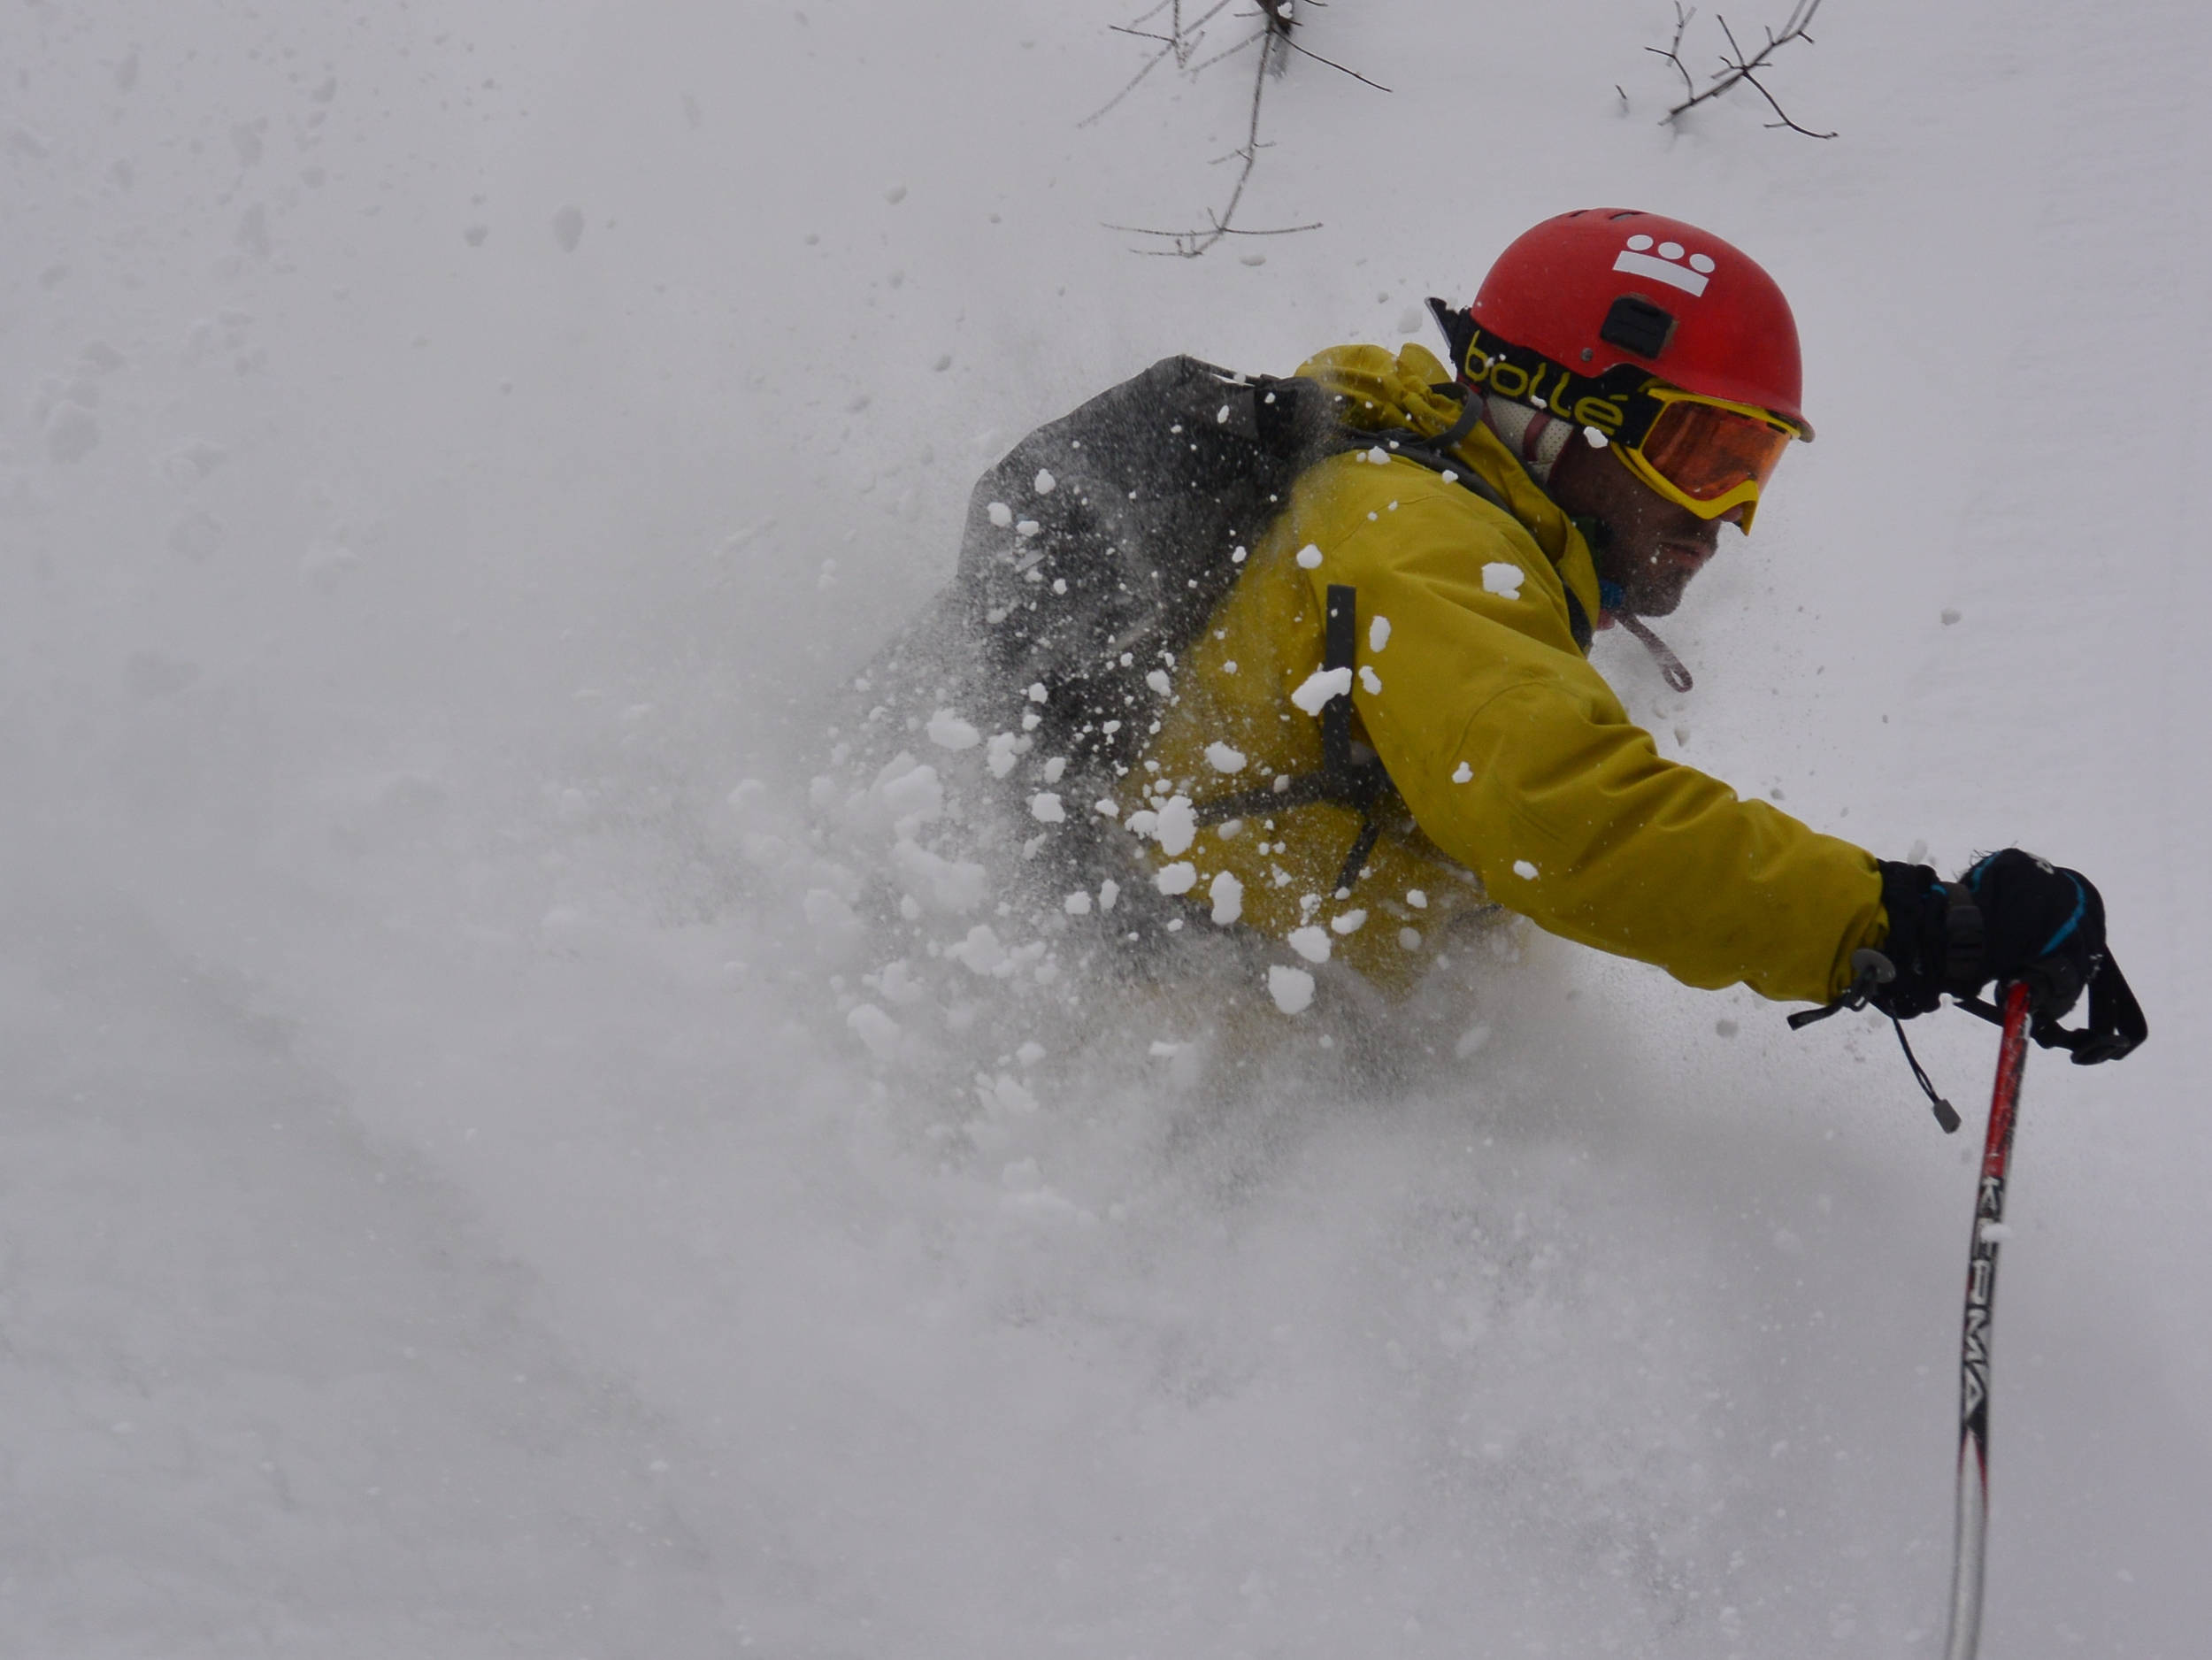 Believe it or not, this is the worst day I've had at Kokusai. © The Powder Project Pty Ltd